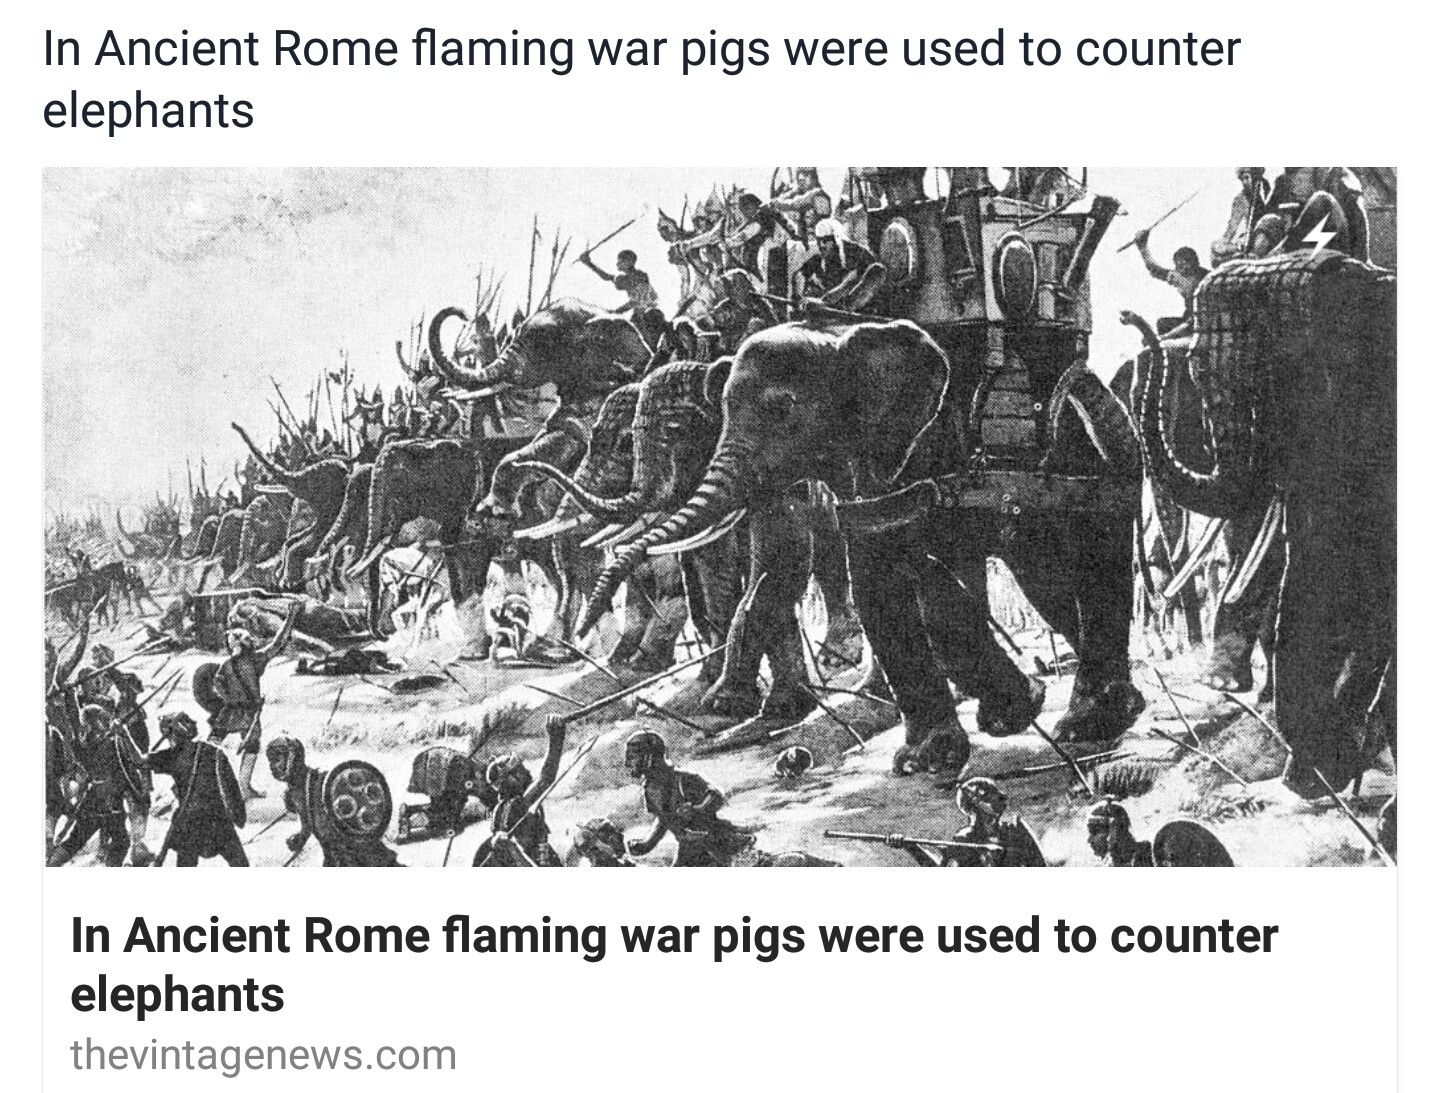 Pigs against elephants, and other wildest battles in the history of wars